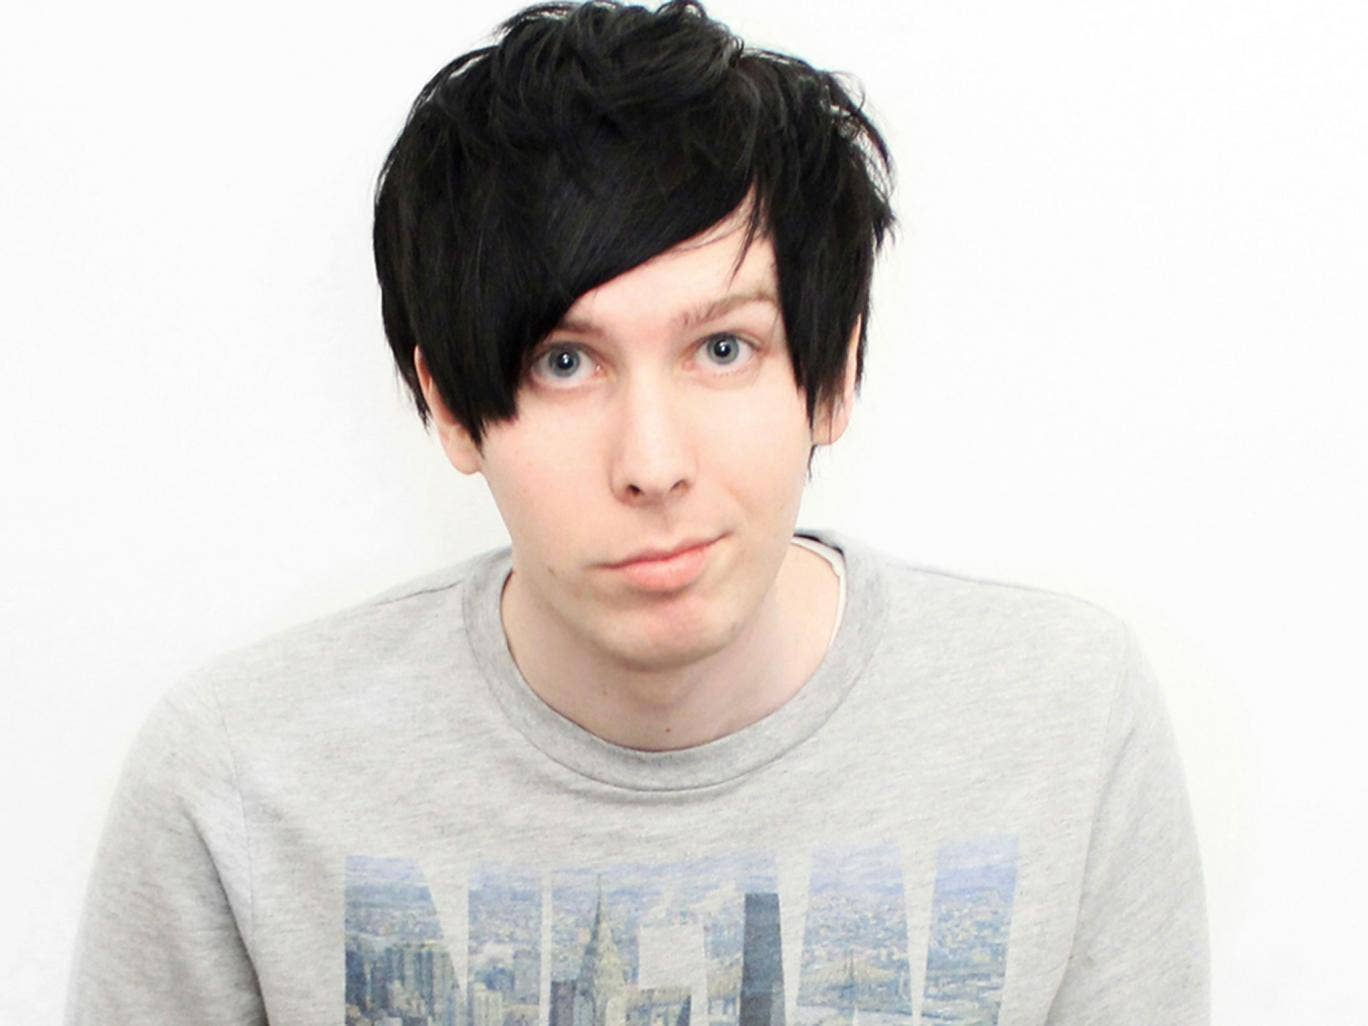 Phil Lester, who has 1.2m for his Amazing Phil YouTube channel, was hired with Dan Howell on BBC Radio 1